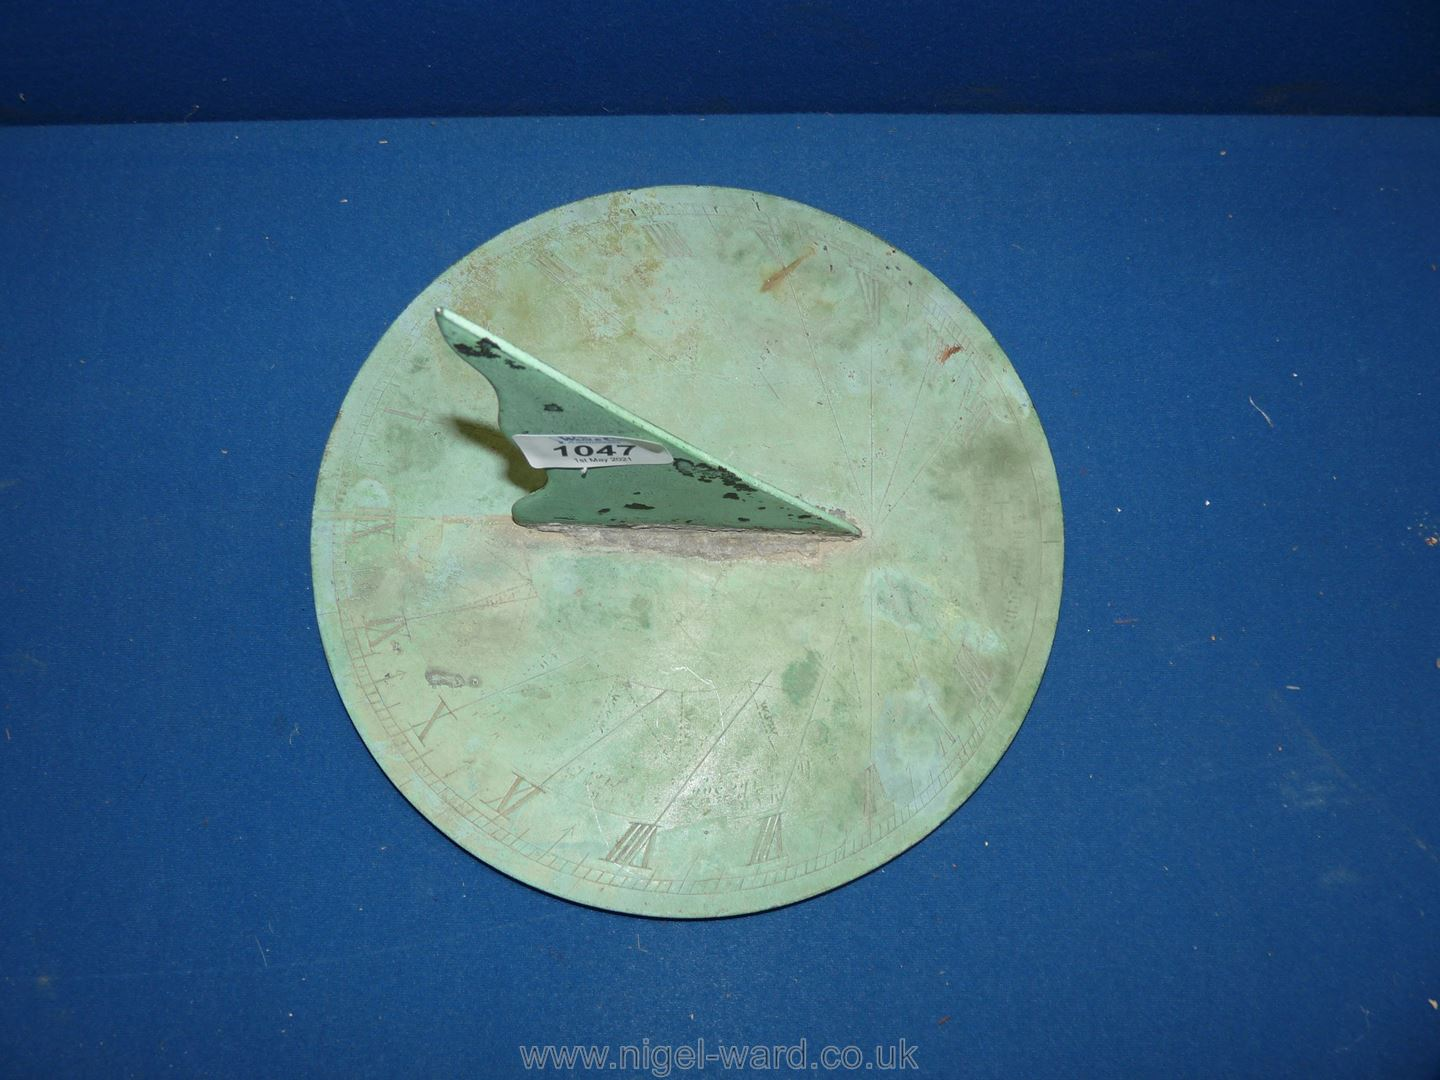 An antique bronze Sundial with weathered green patina, - Image 2 of 3